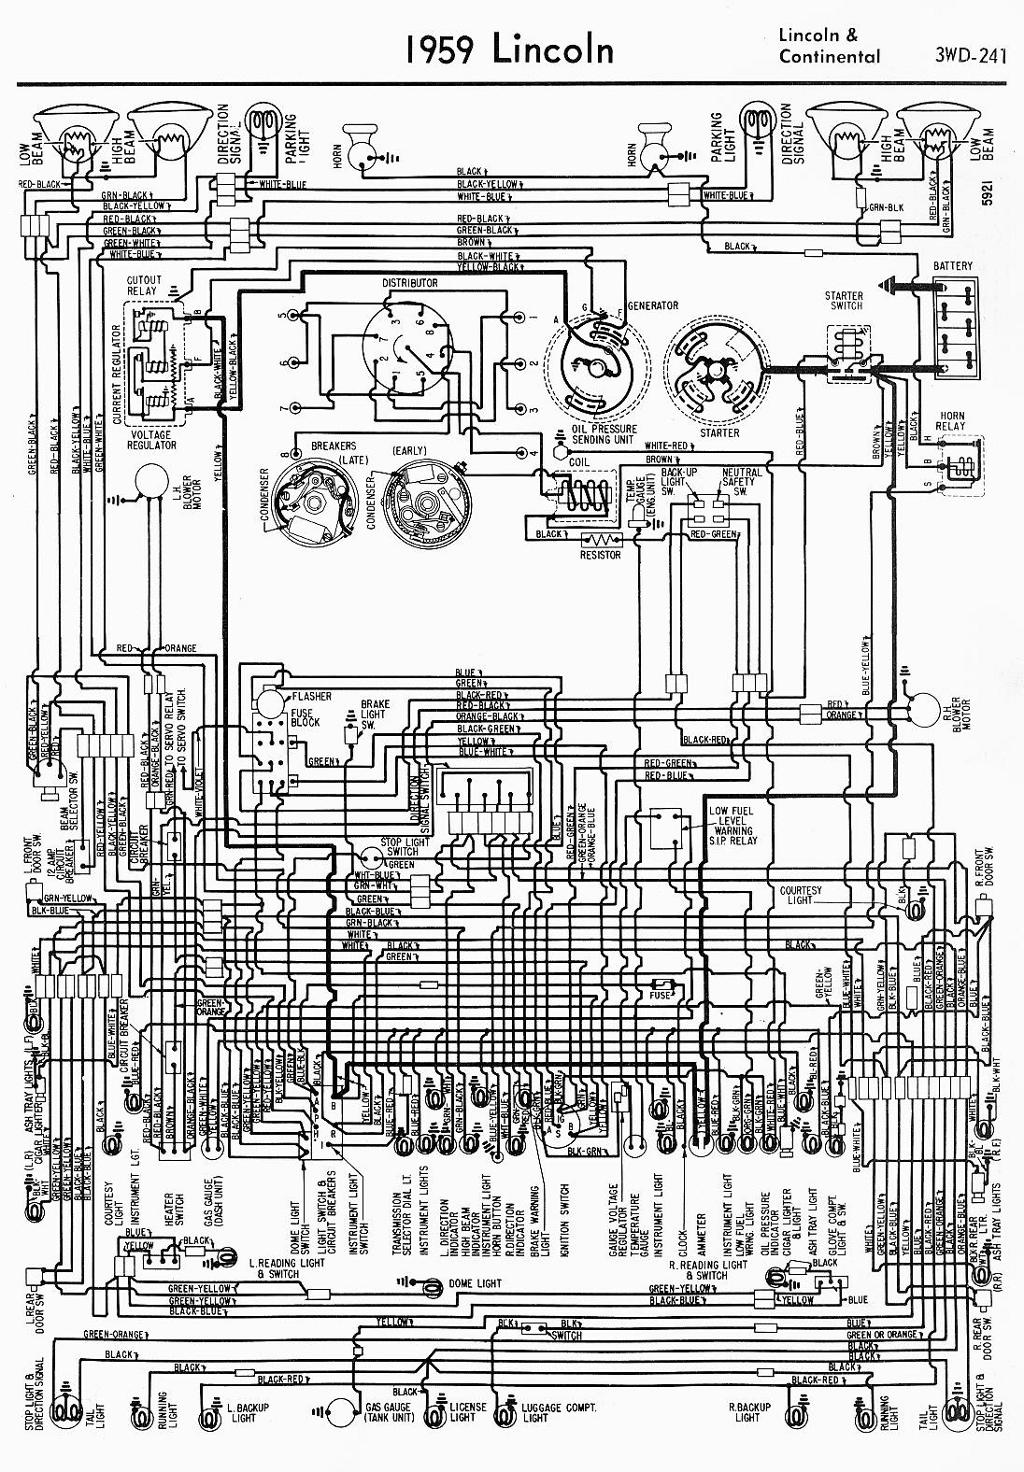 wiring diagram for 1959 lincoln continental?t=1508494920 lincoln car manuals, wiring diagrams pdf & fault codes 1954 Lincoln Continental at soozxer.org